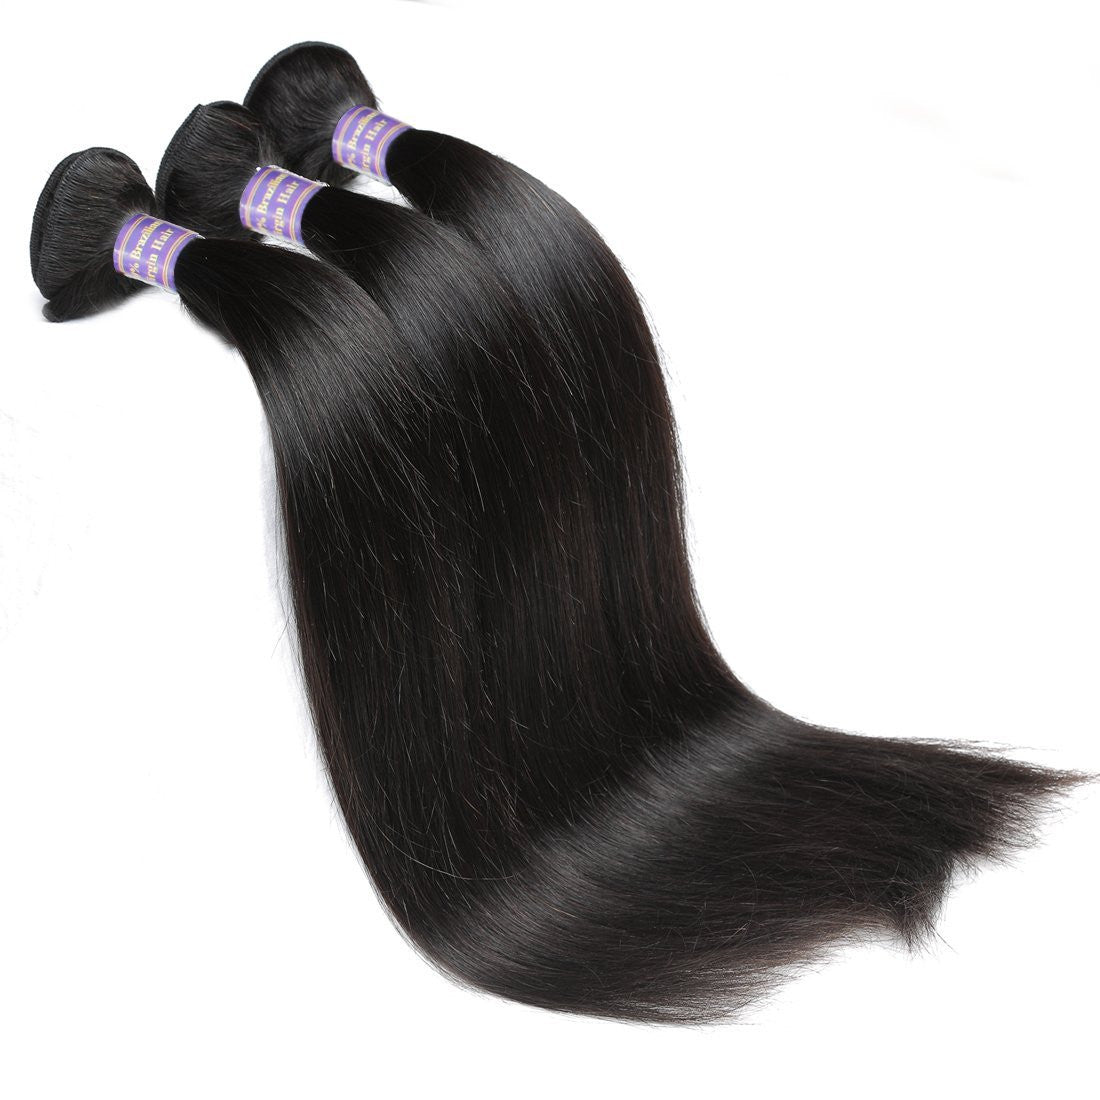 Brazilian Human Virgin Long hair Straight Hair 3 Bundles Unprocessed Human Hair Weave - BelCorner